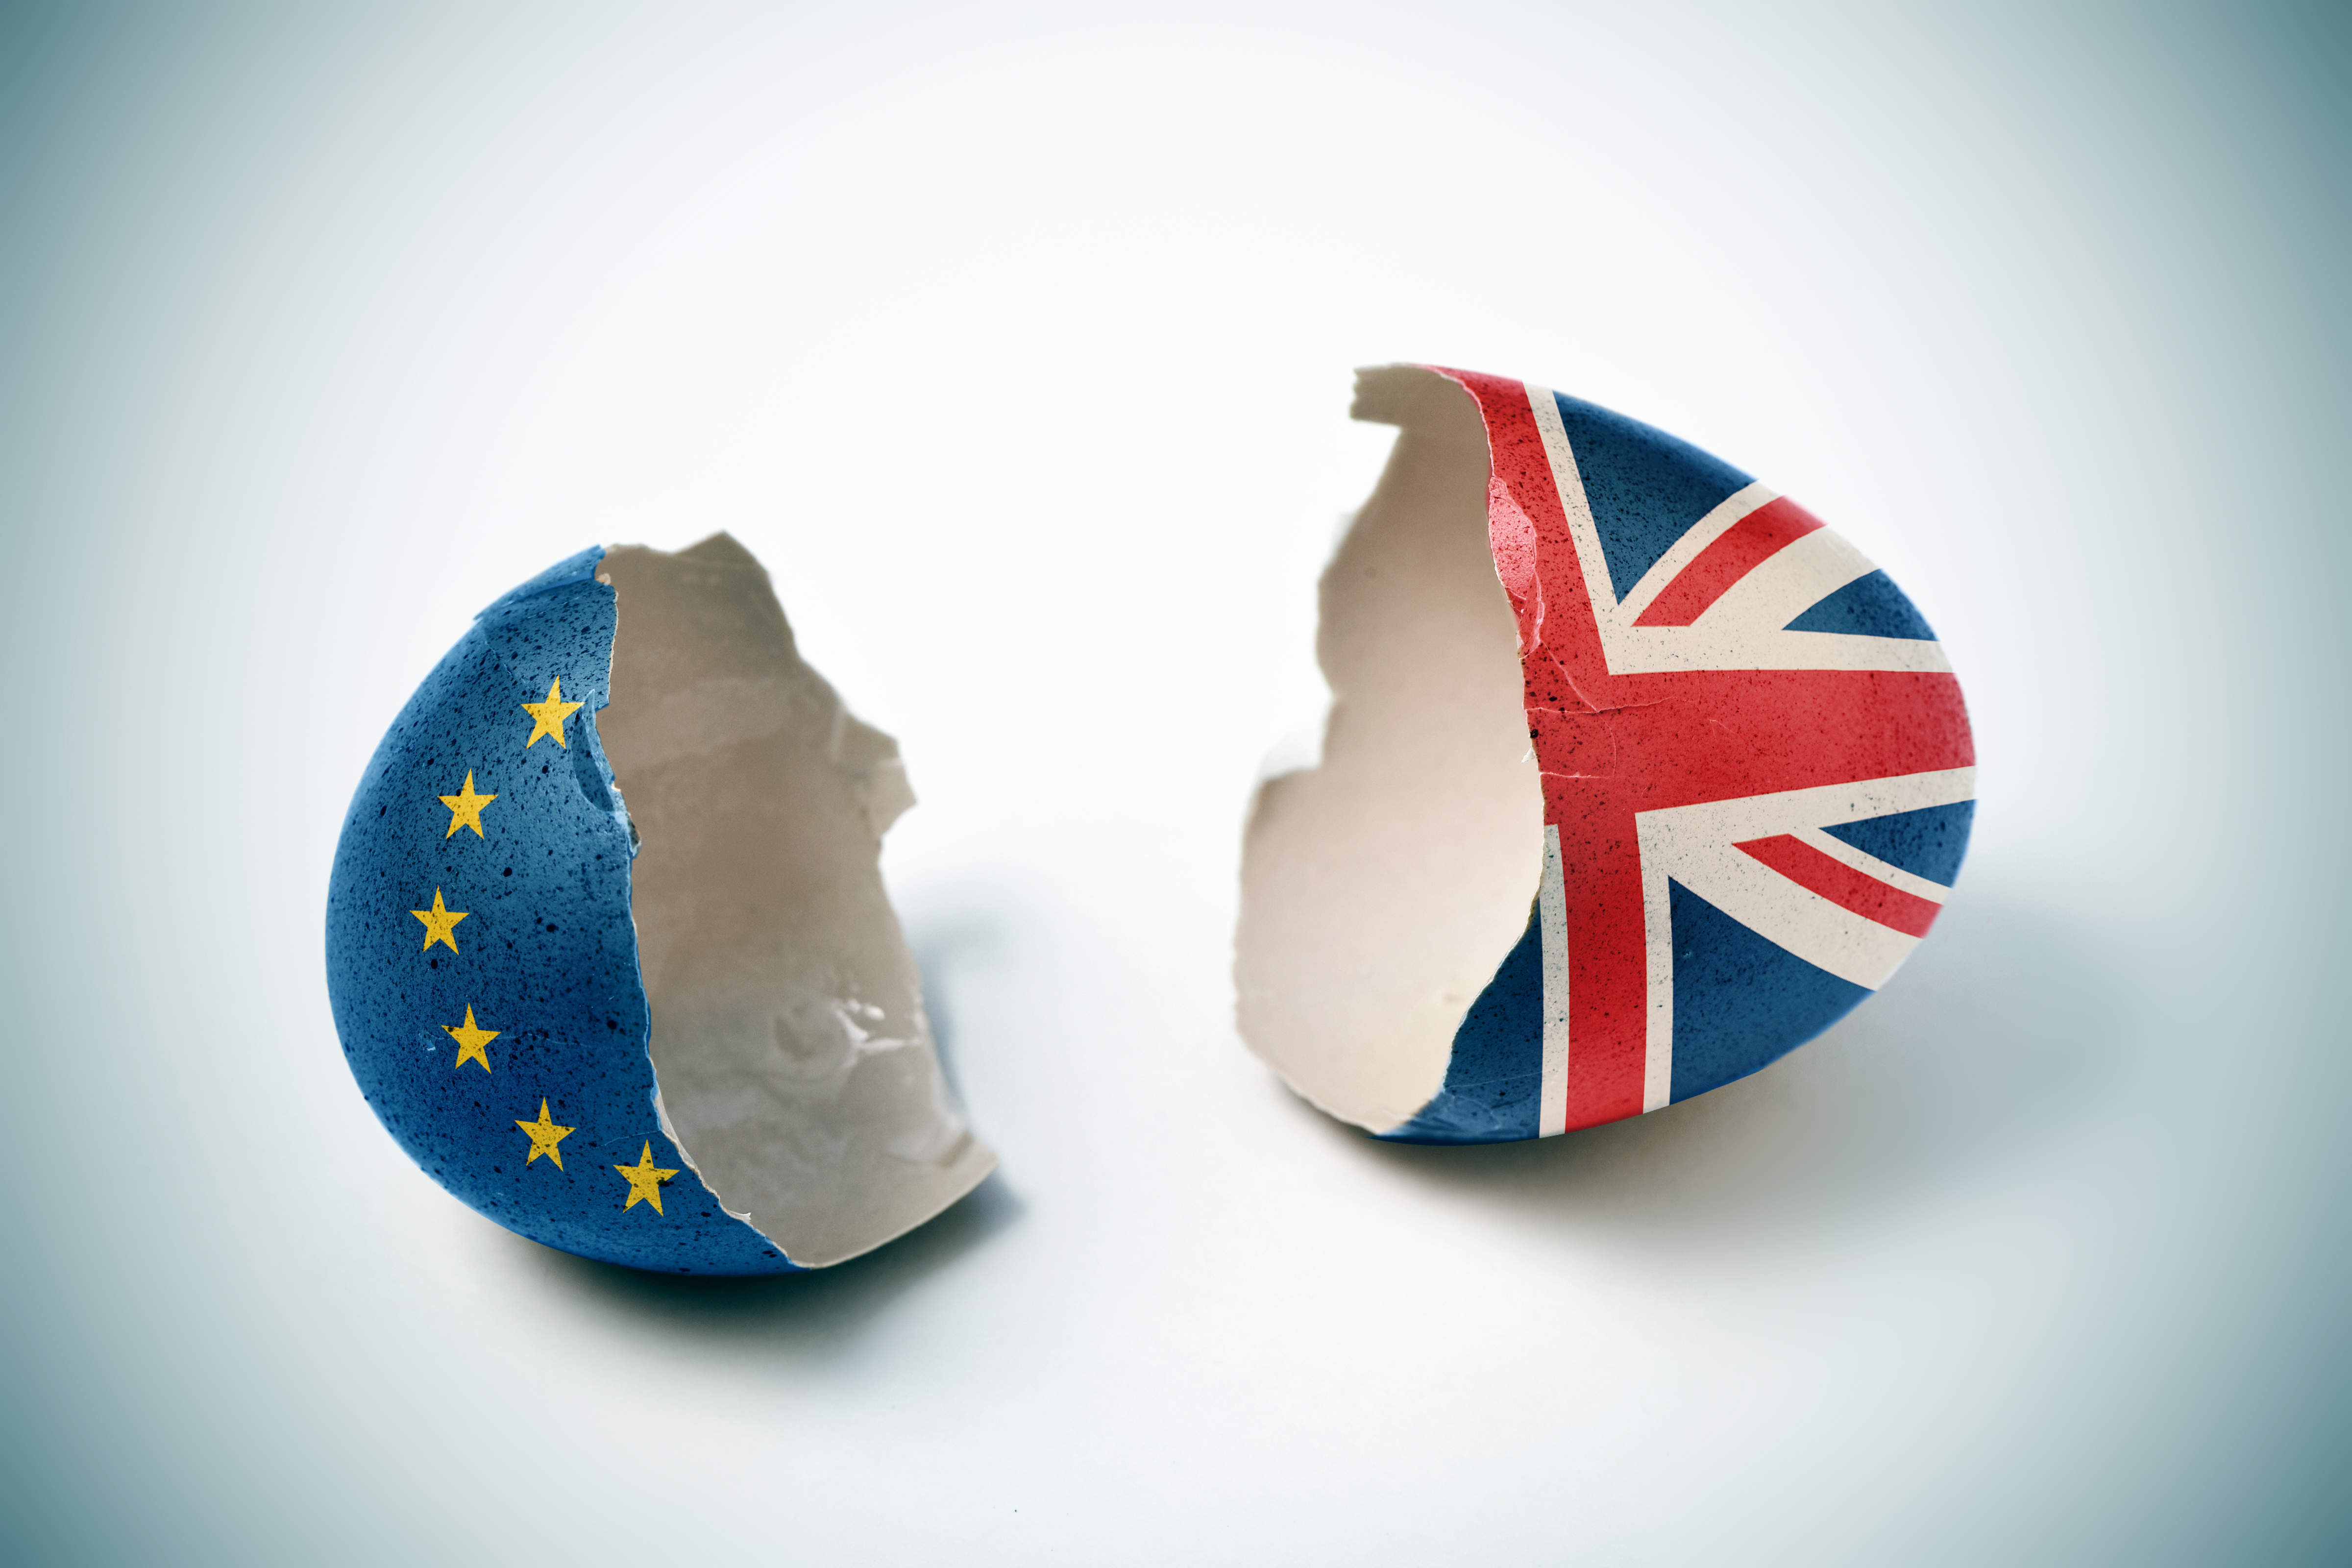 Brexit: Where is public opinion now?